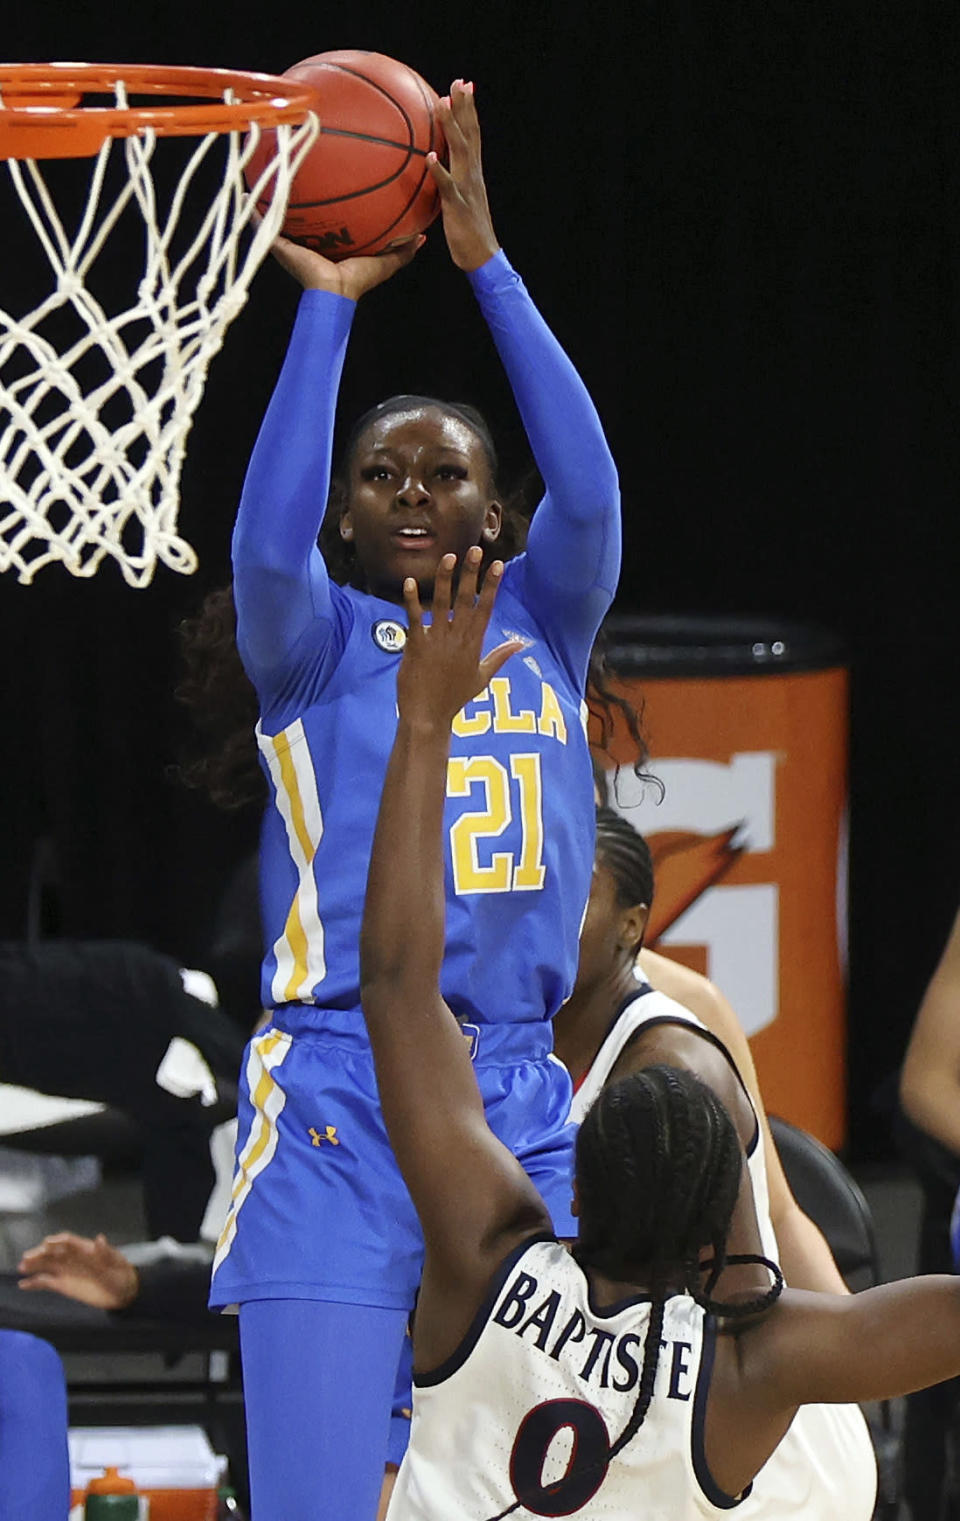 UCLA forward Michaela Onyenwere (21) shoots as Arizona forward Trinity Baptiste (0) defends during the second half of an NCAA college basketball game in the semifinals of the Pac-12 women's tournament Friday, March 5, 2021, in Las Vegas. (AP Photo/Isaac Brekken)